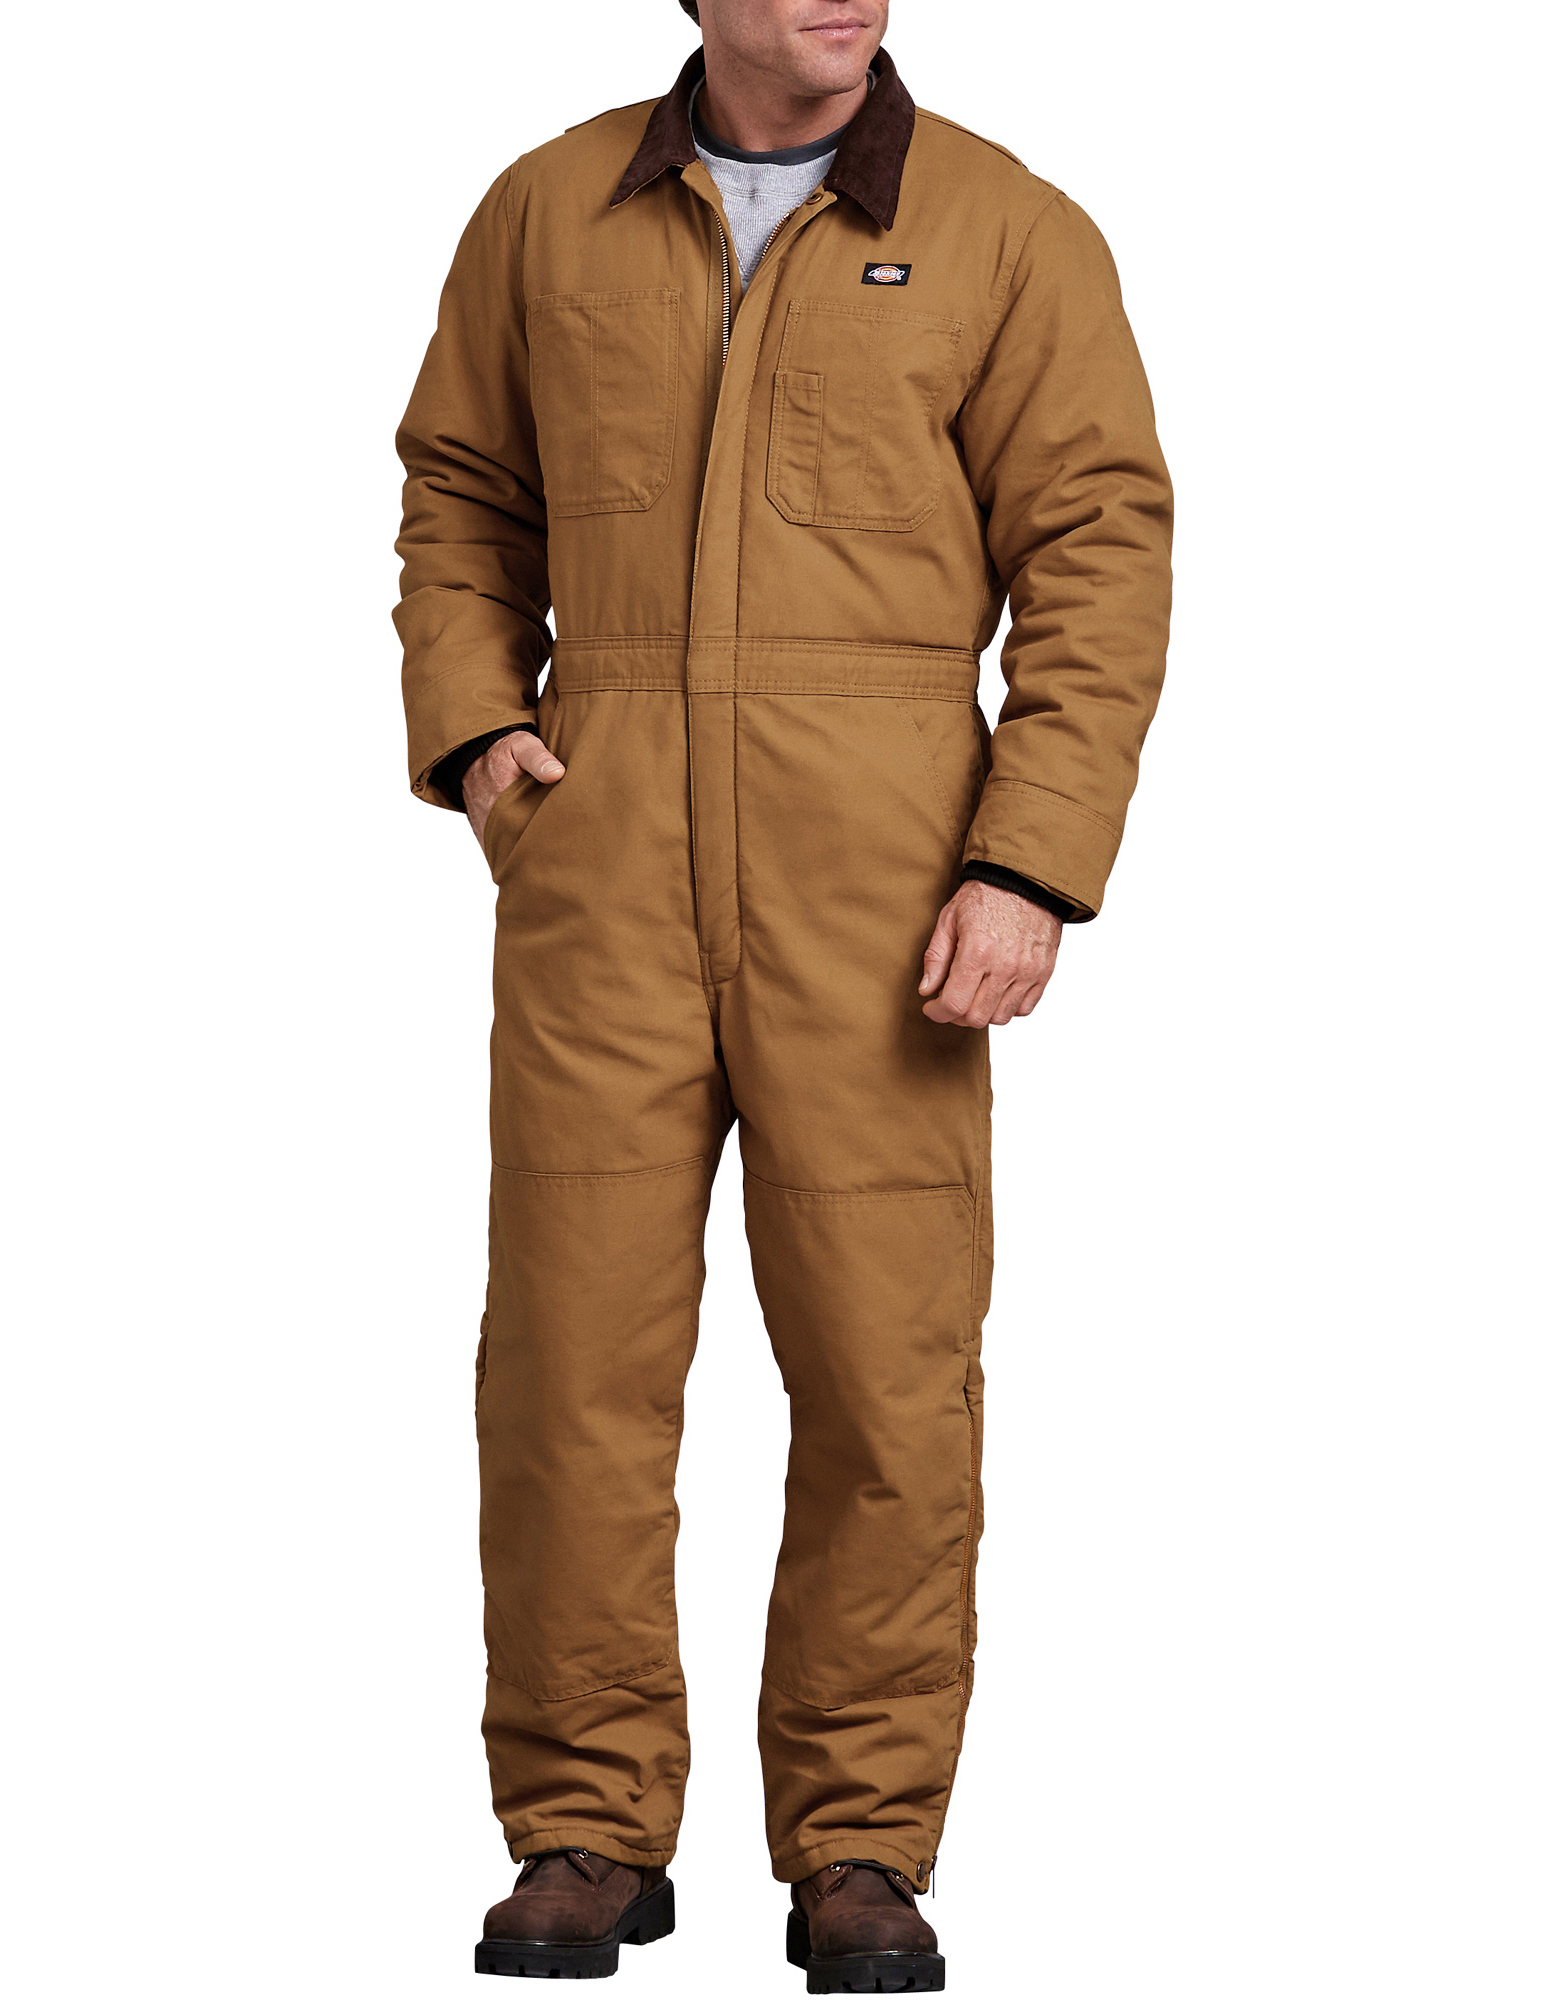 Sanded Duck Insulated Coveralls - Brown Duck (RBD)